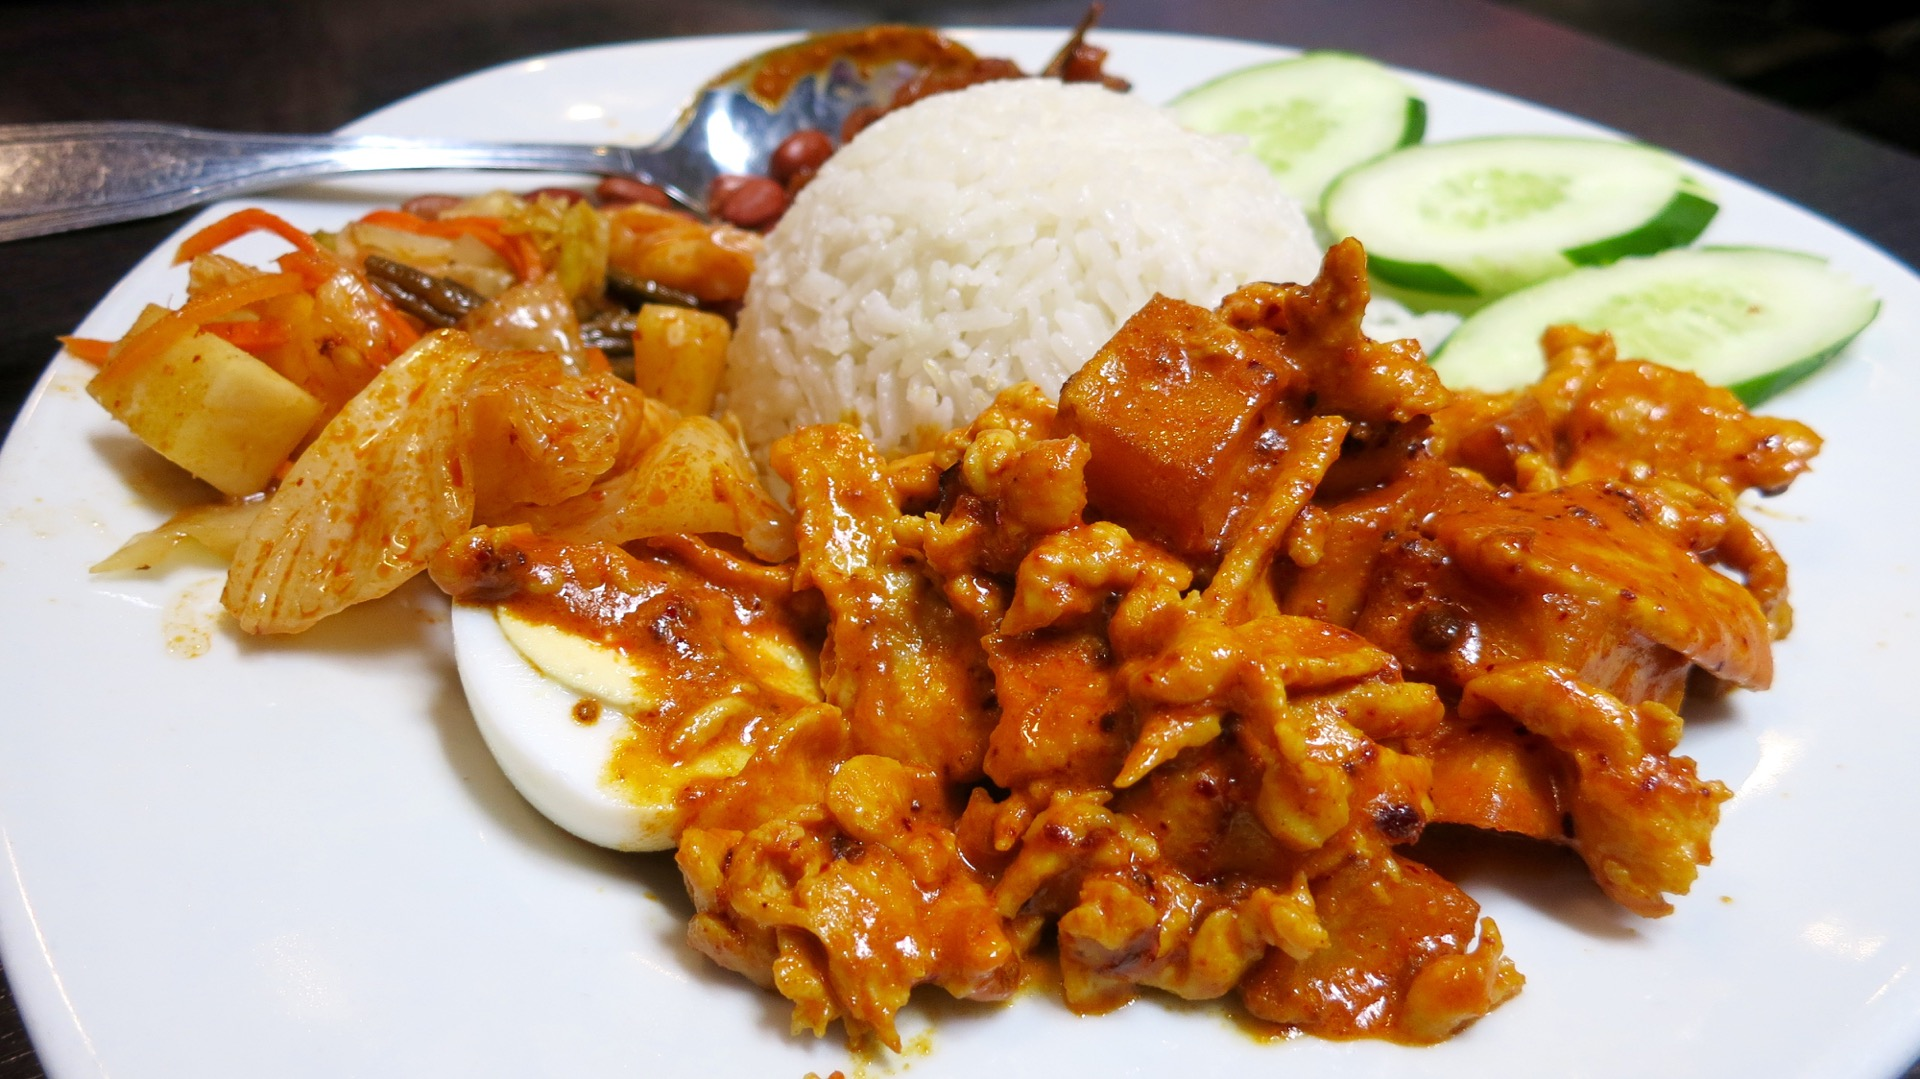 Nasi lemak, the national dish of Malaysia, at Chilli Padi.